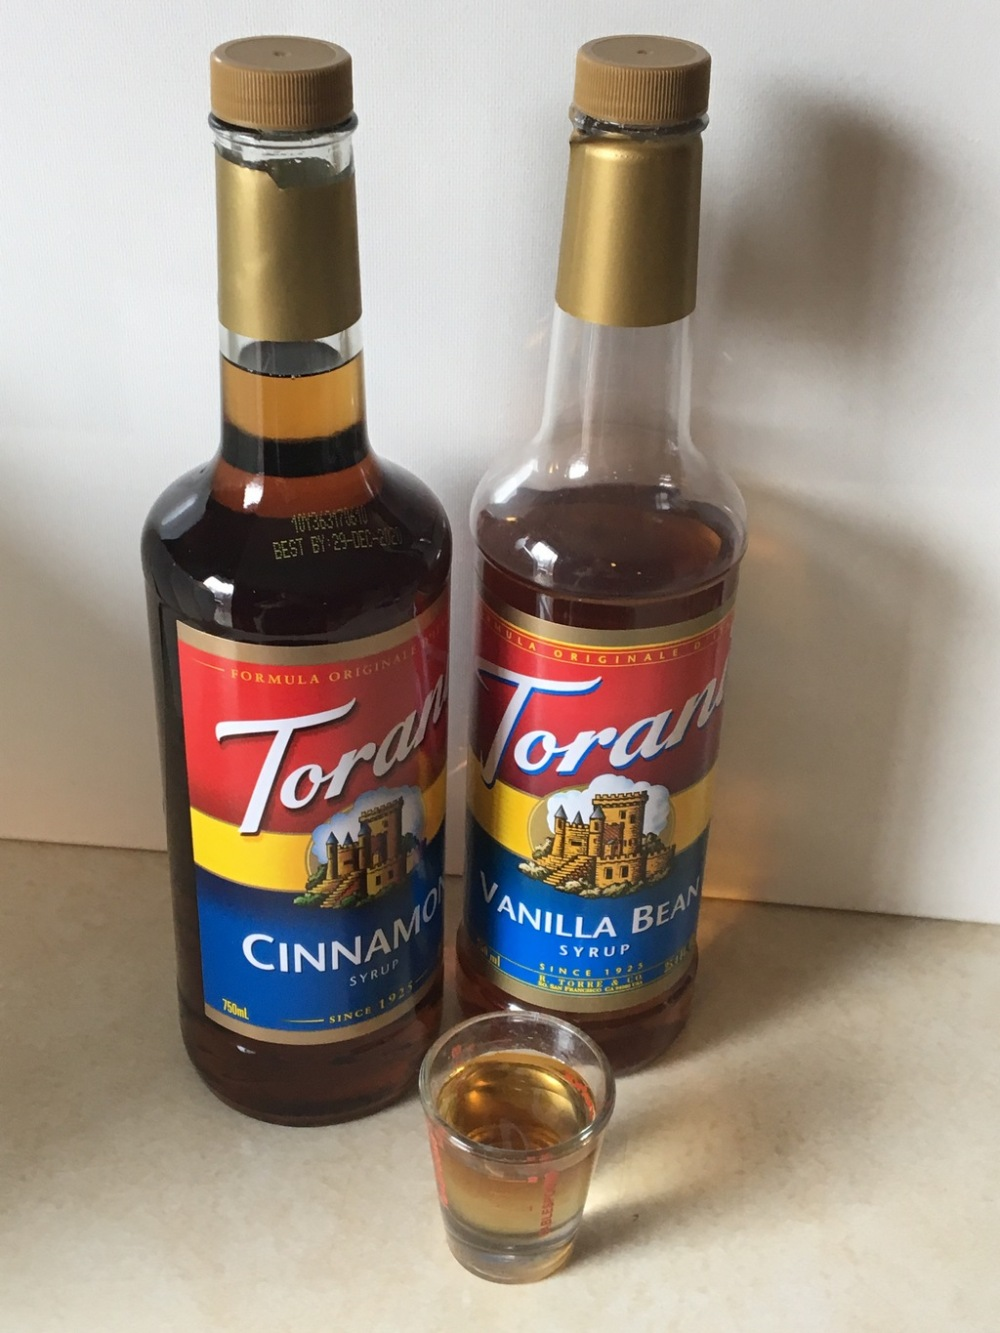 Cinnamon and Vanilla Bean Torani Coffee Syrup